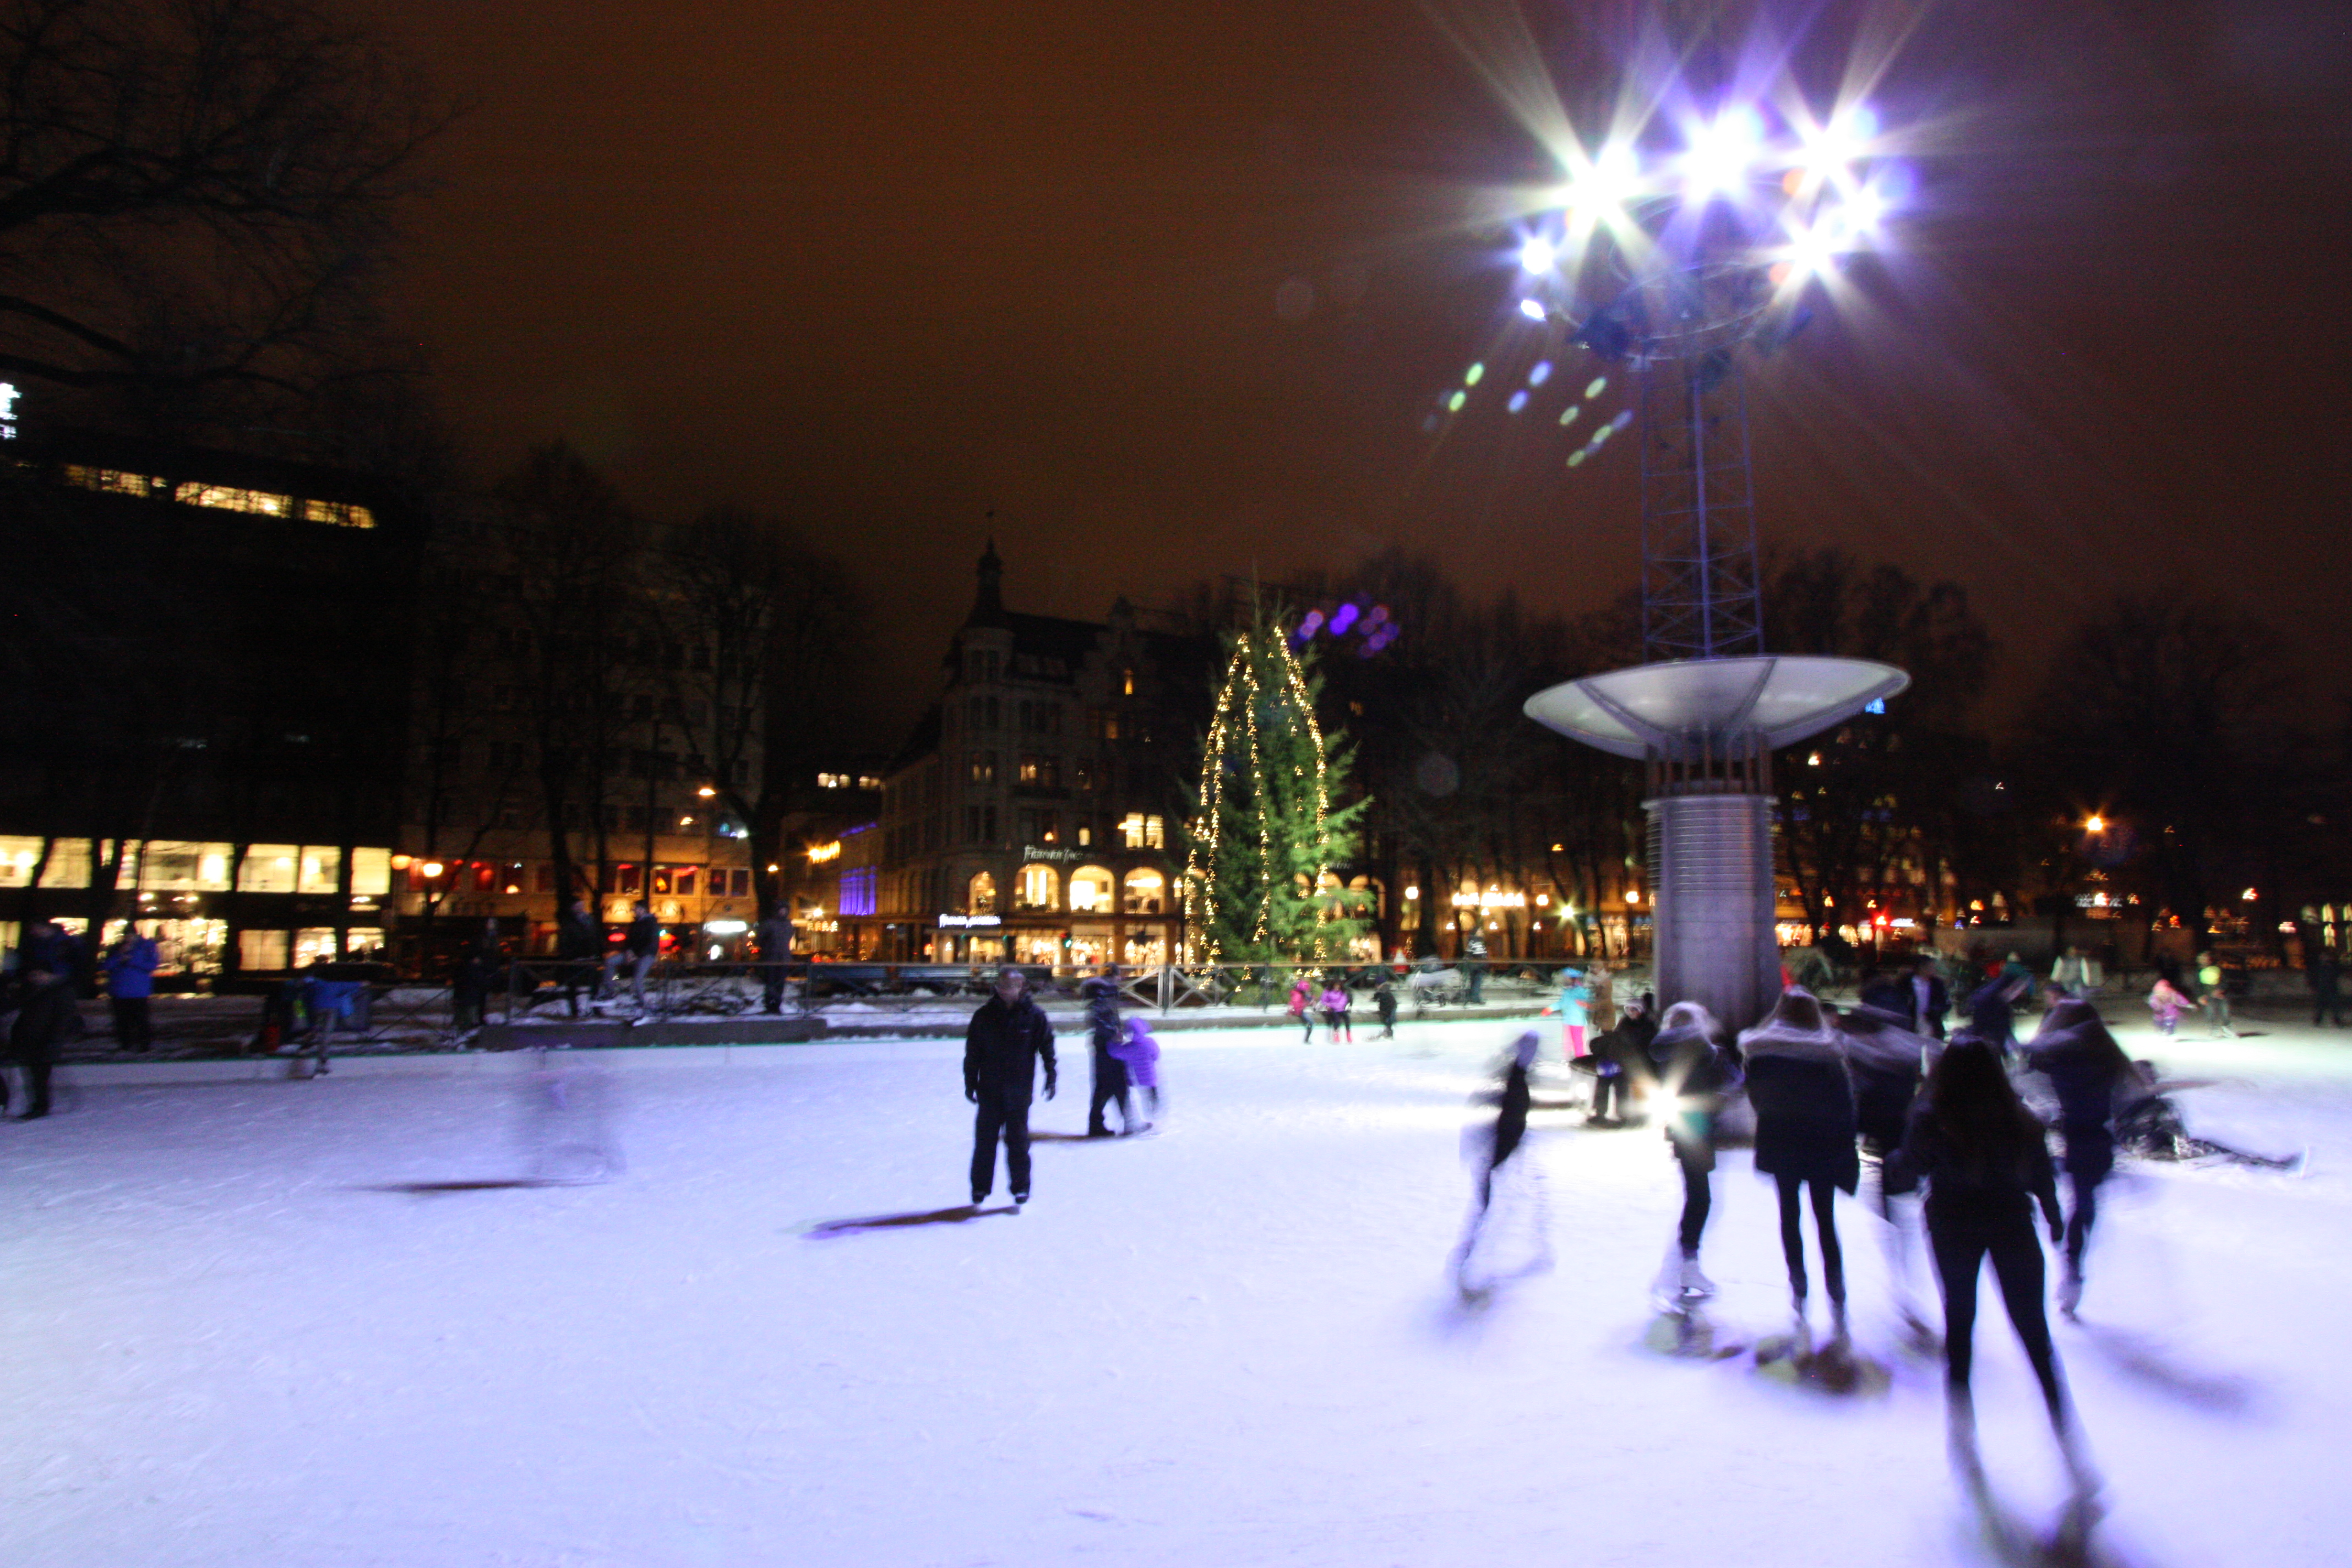 Peaople skating at Spikersuppa in Oslo